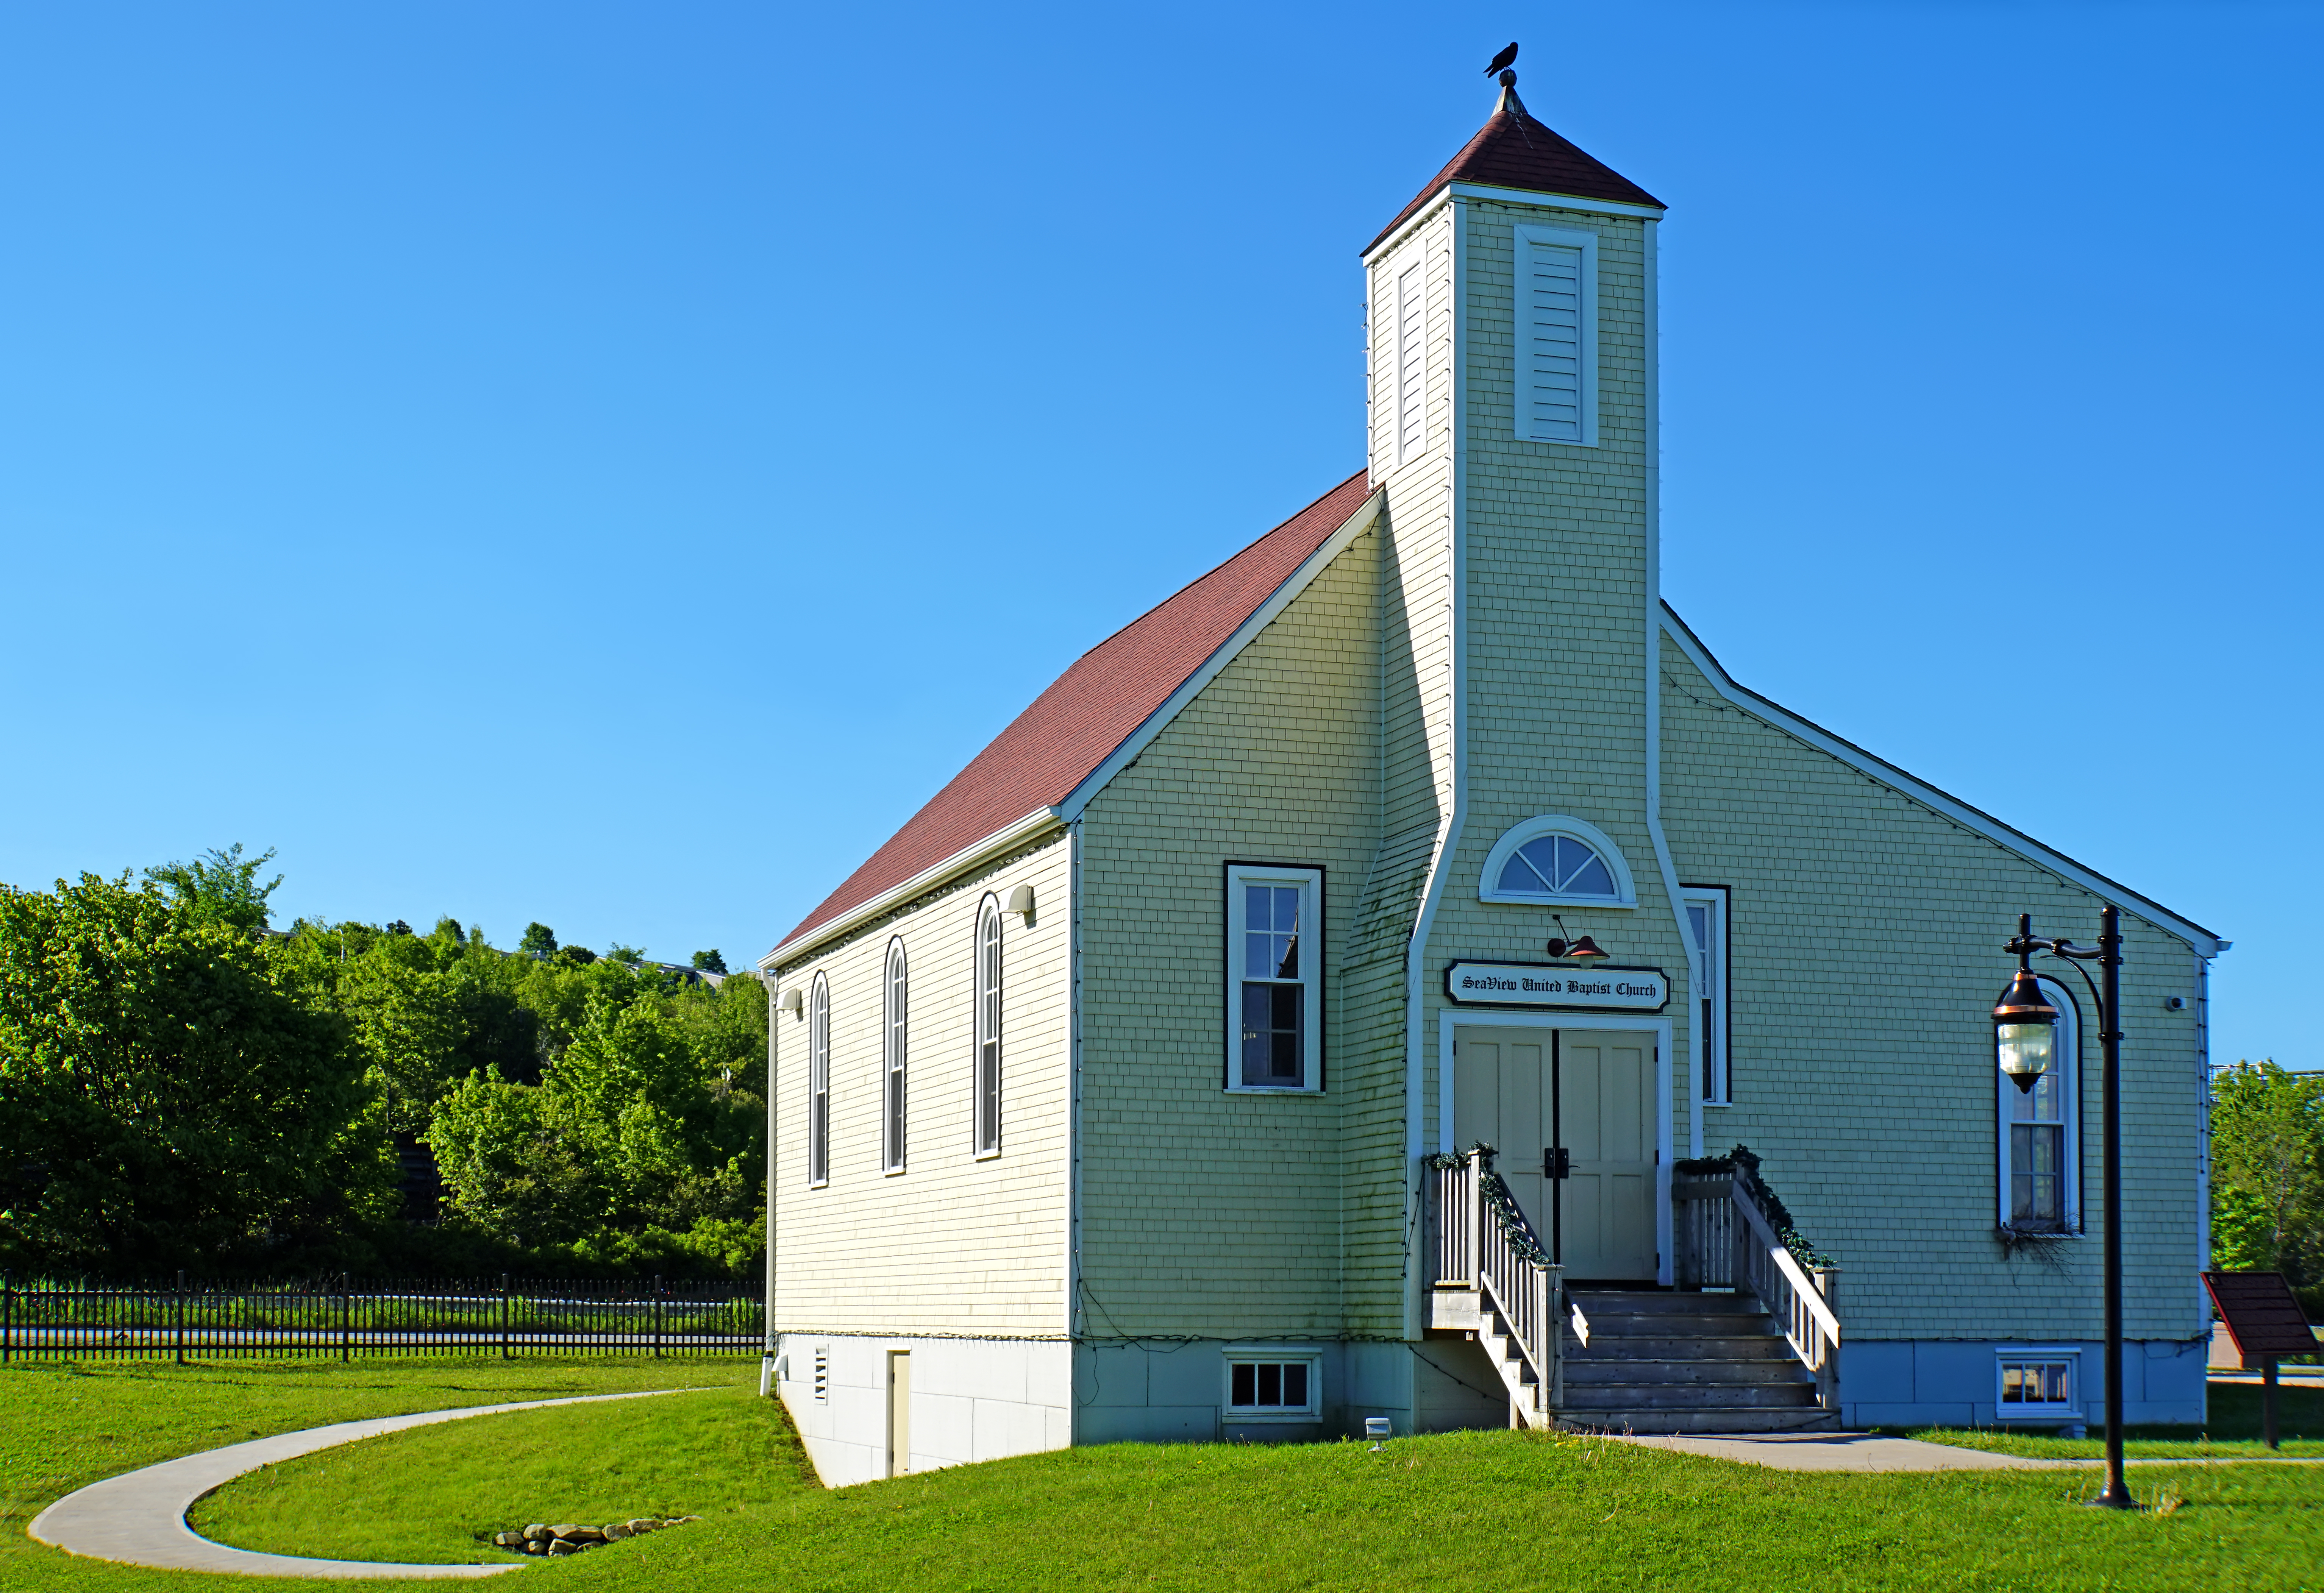 The Seaview African United Baptist Church